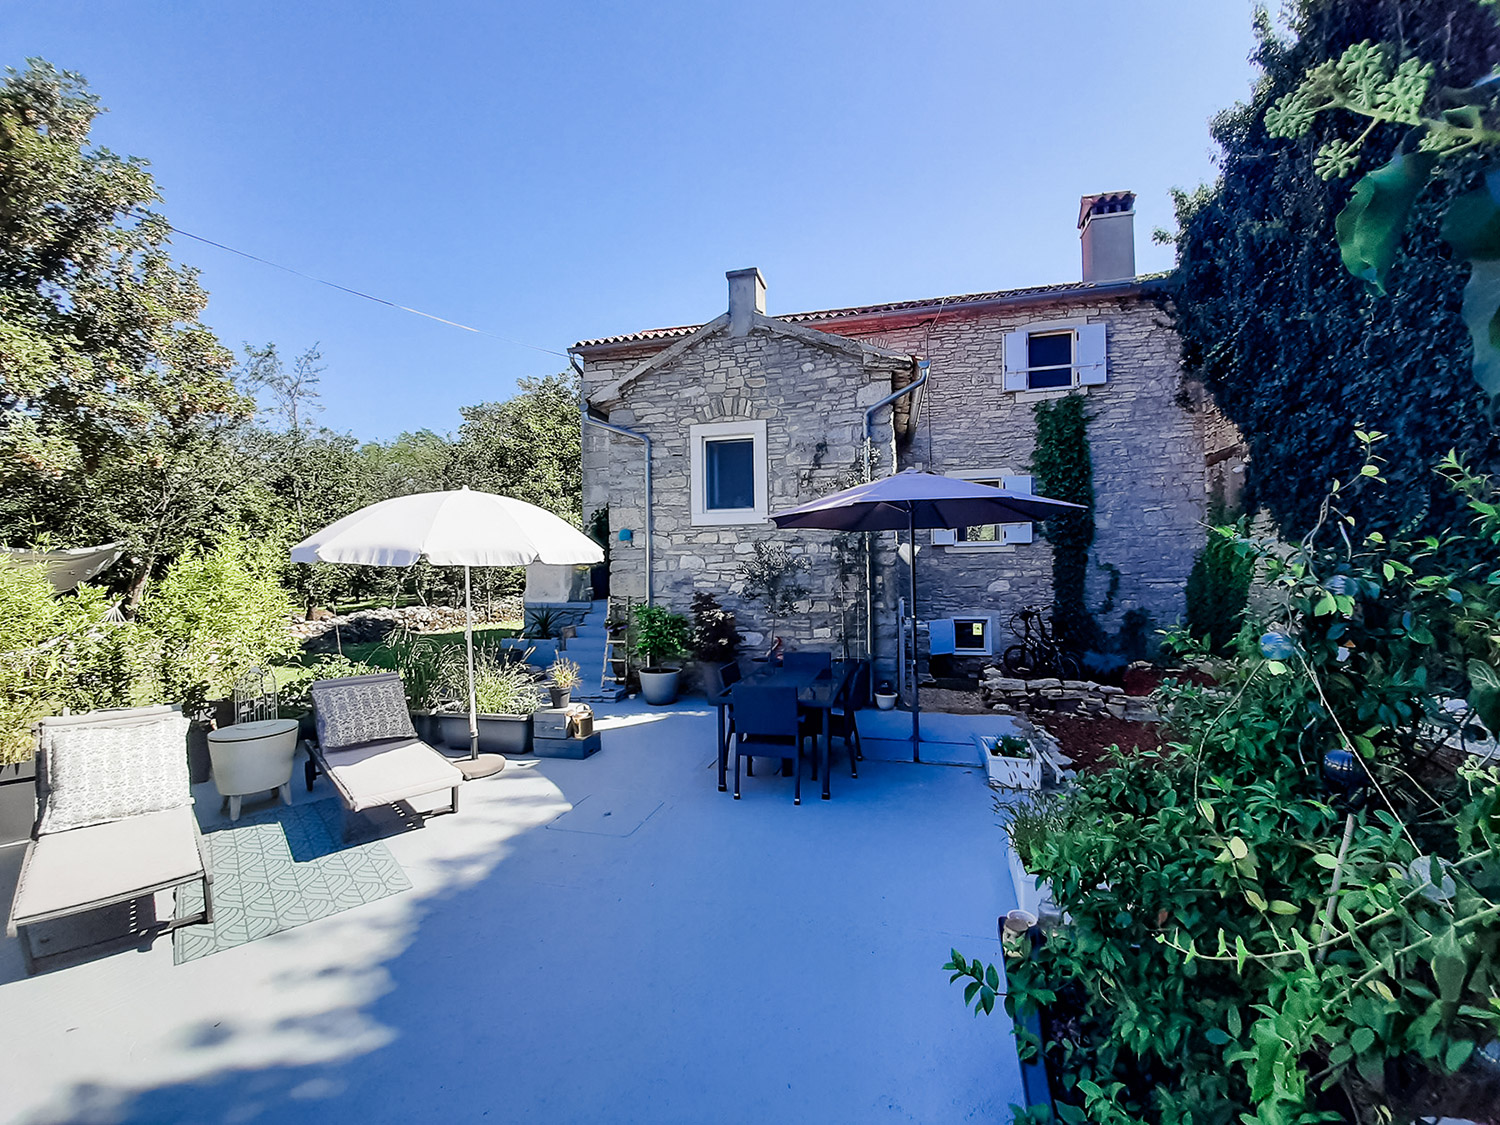 houses for sale in istria, property for sale in istria, renovated houses for sale in istria